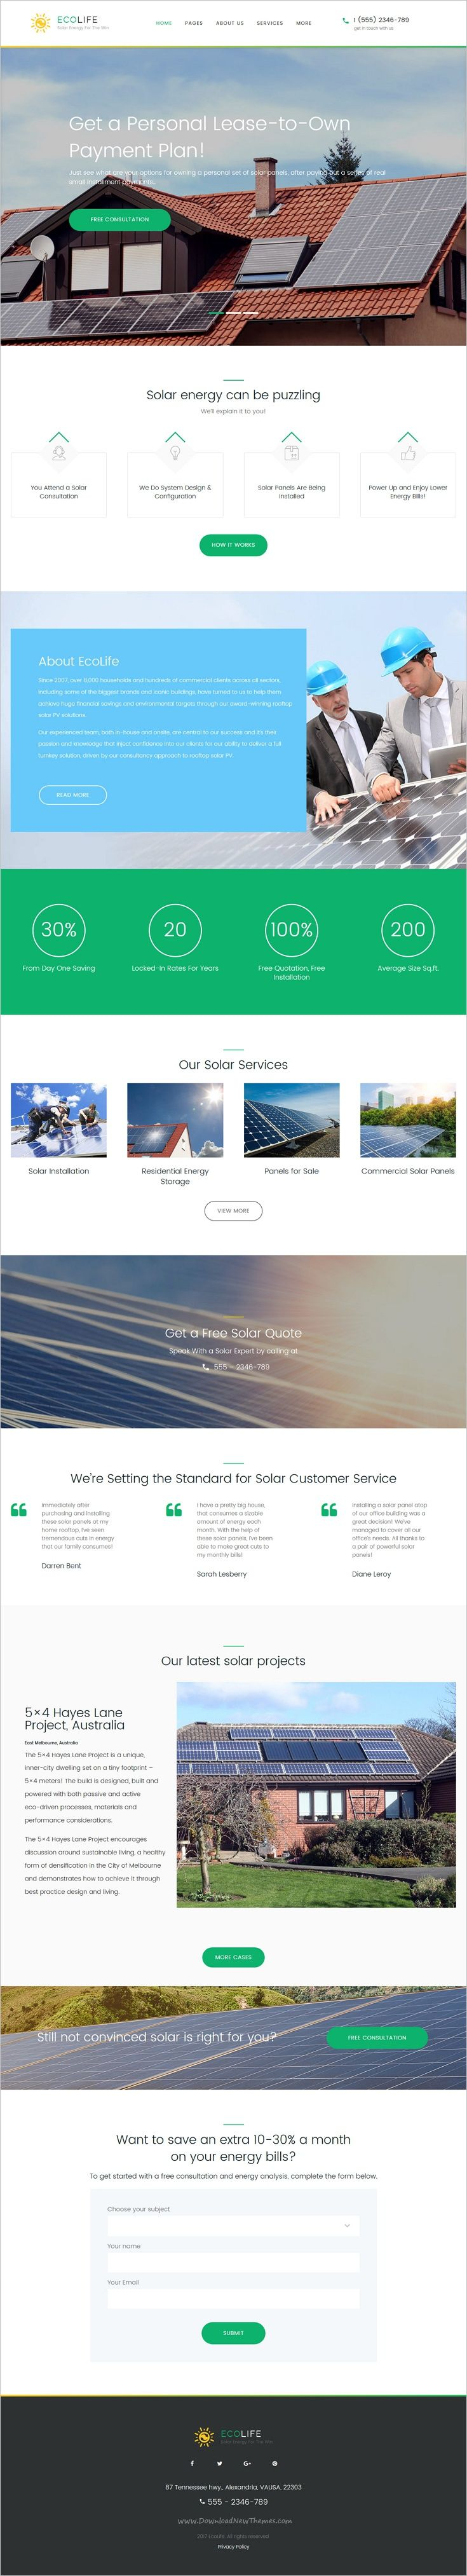 This Wordpress Theme For Green Energy Company Is Delivered With Multiple Layout O Free Business Card Templates Business Cards Online Business Card Template